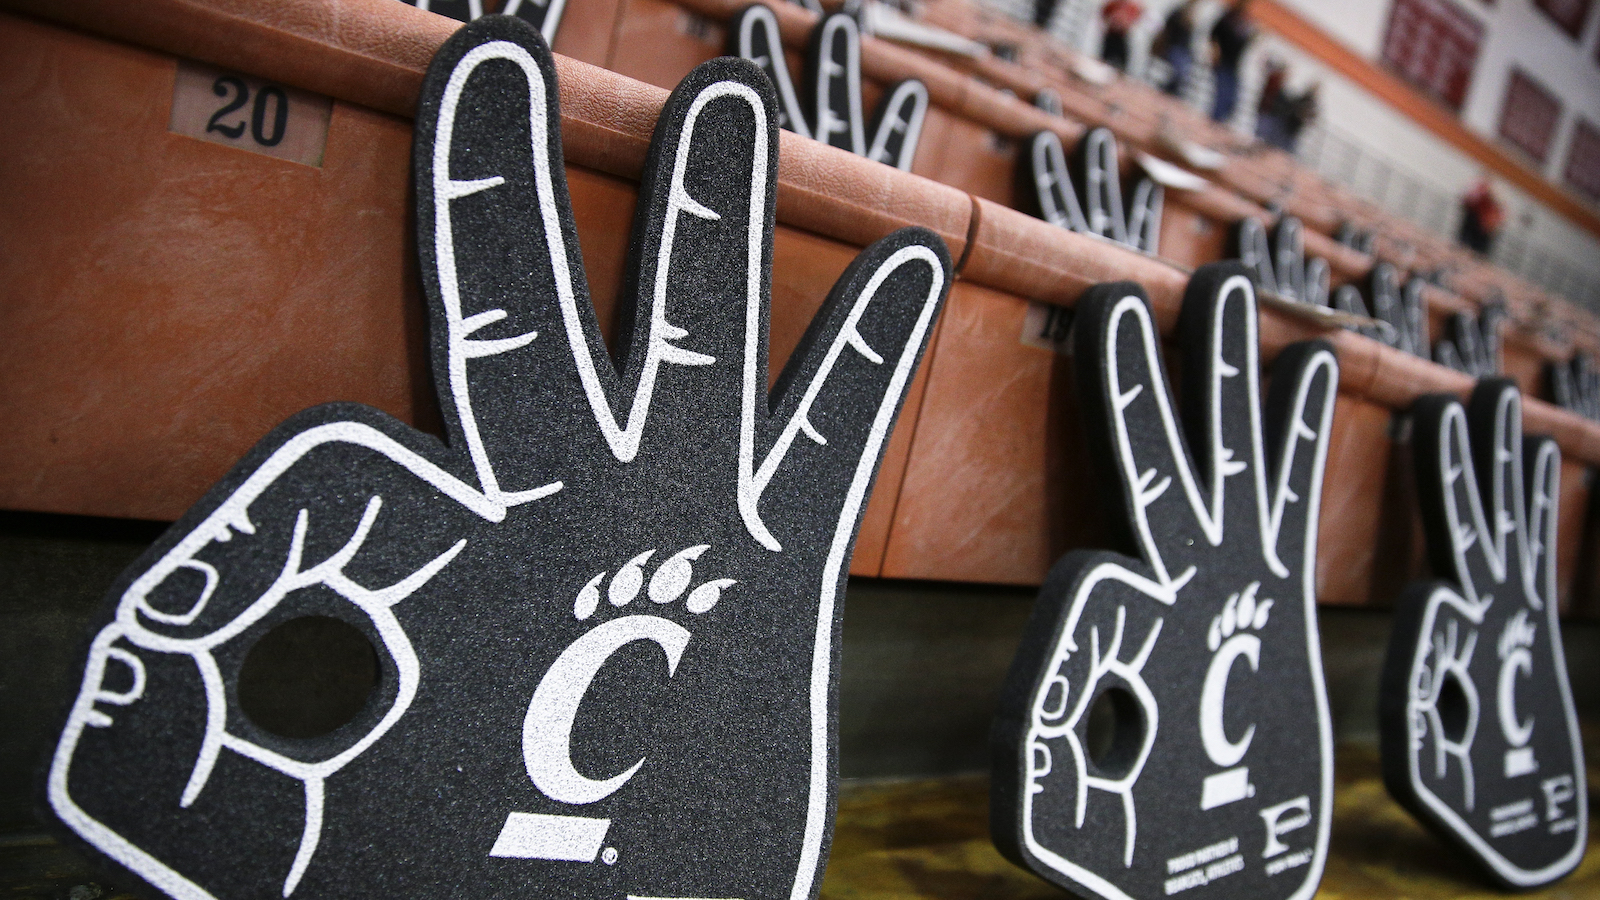 Foam three-point goal fingers representing the Cincinnati Bearcats rest on the bleachers before the first half of an NCAA college basketball game against SMU, Sunday, March 6, 2016, in Cincinnati. (AP Photo/John Minchillo)